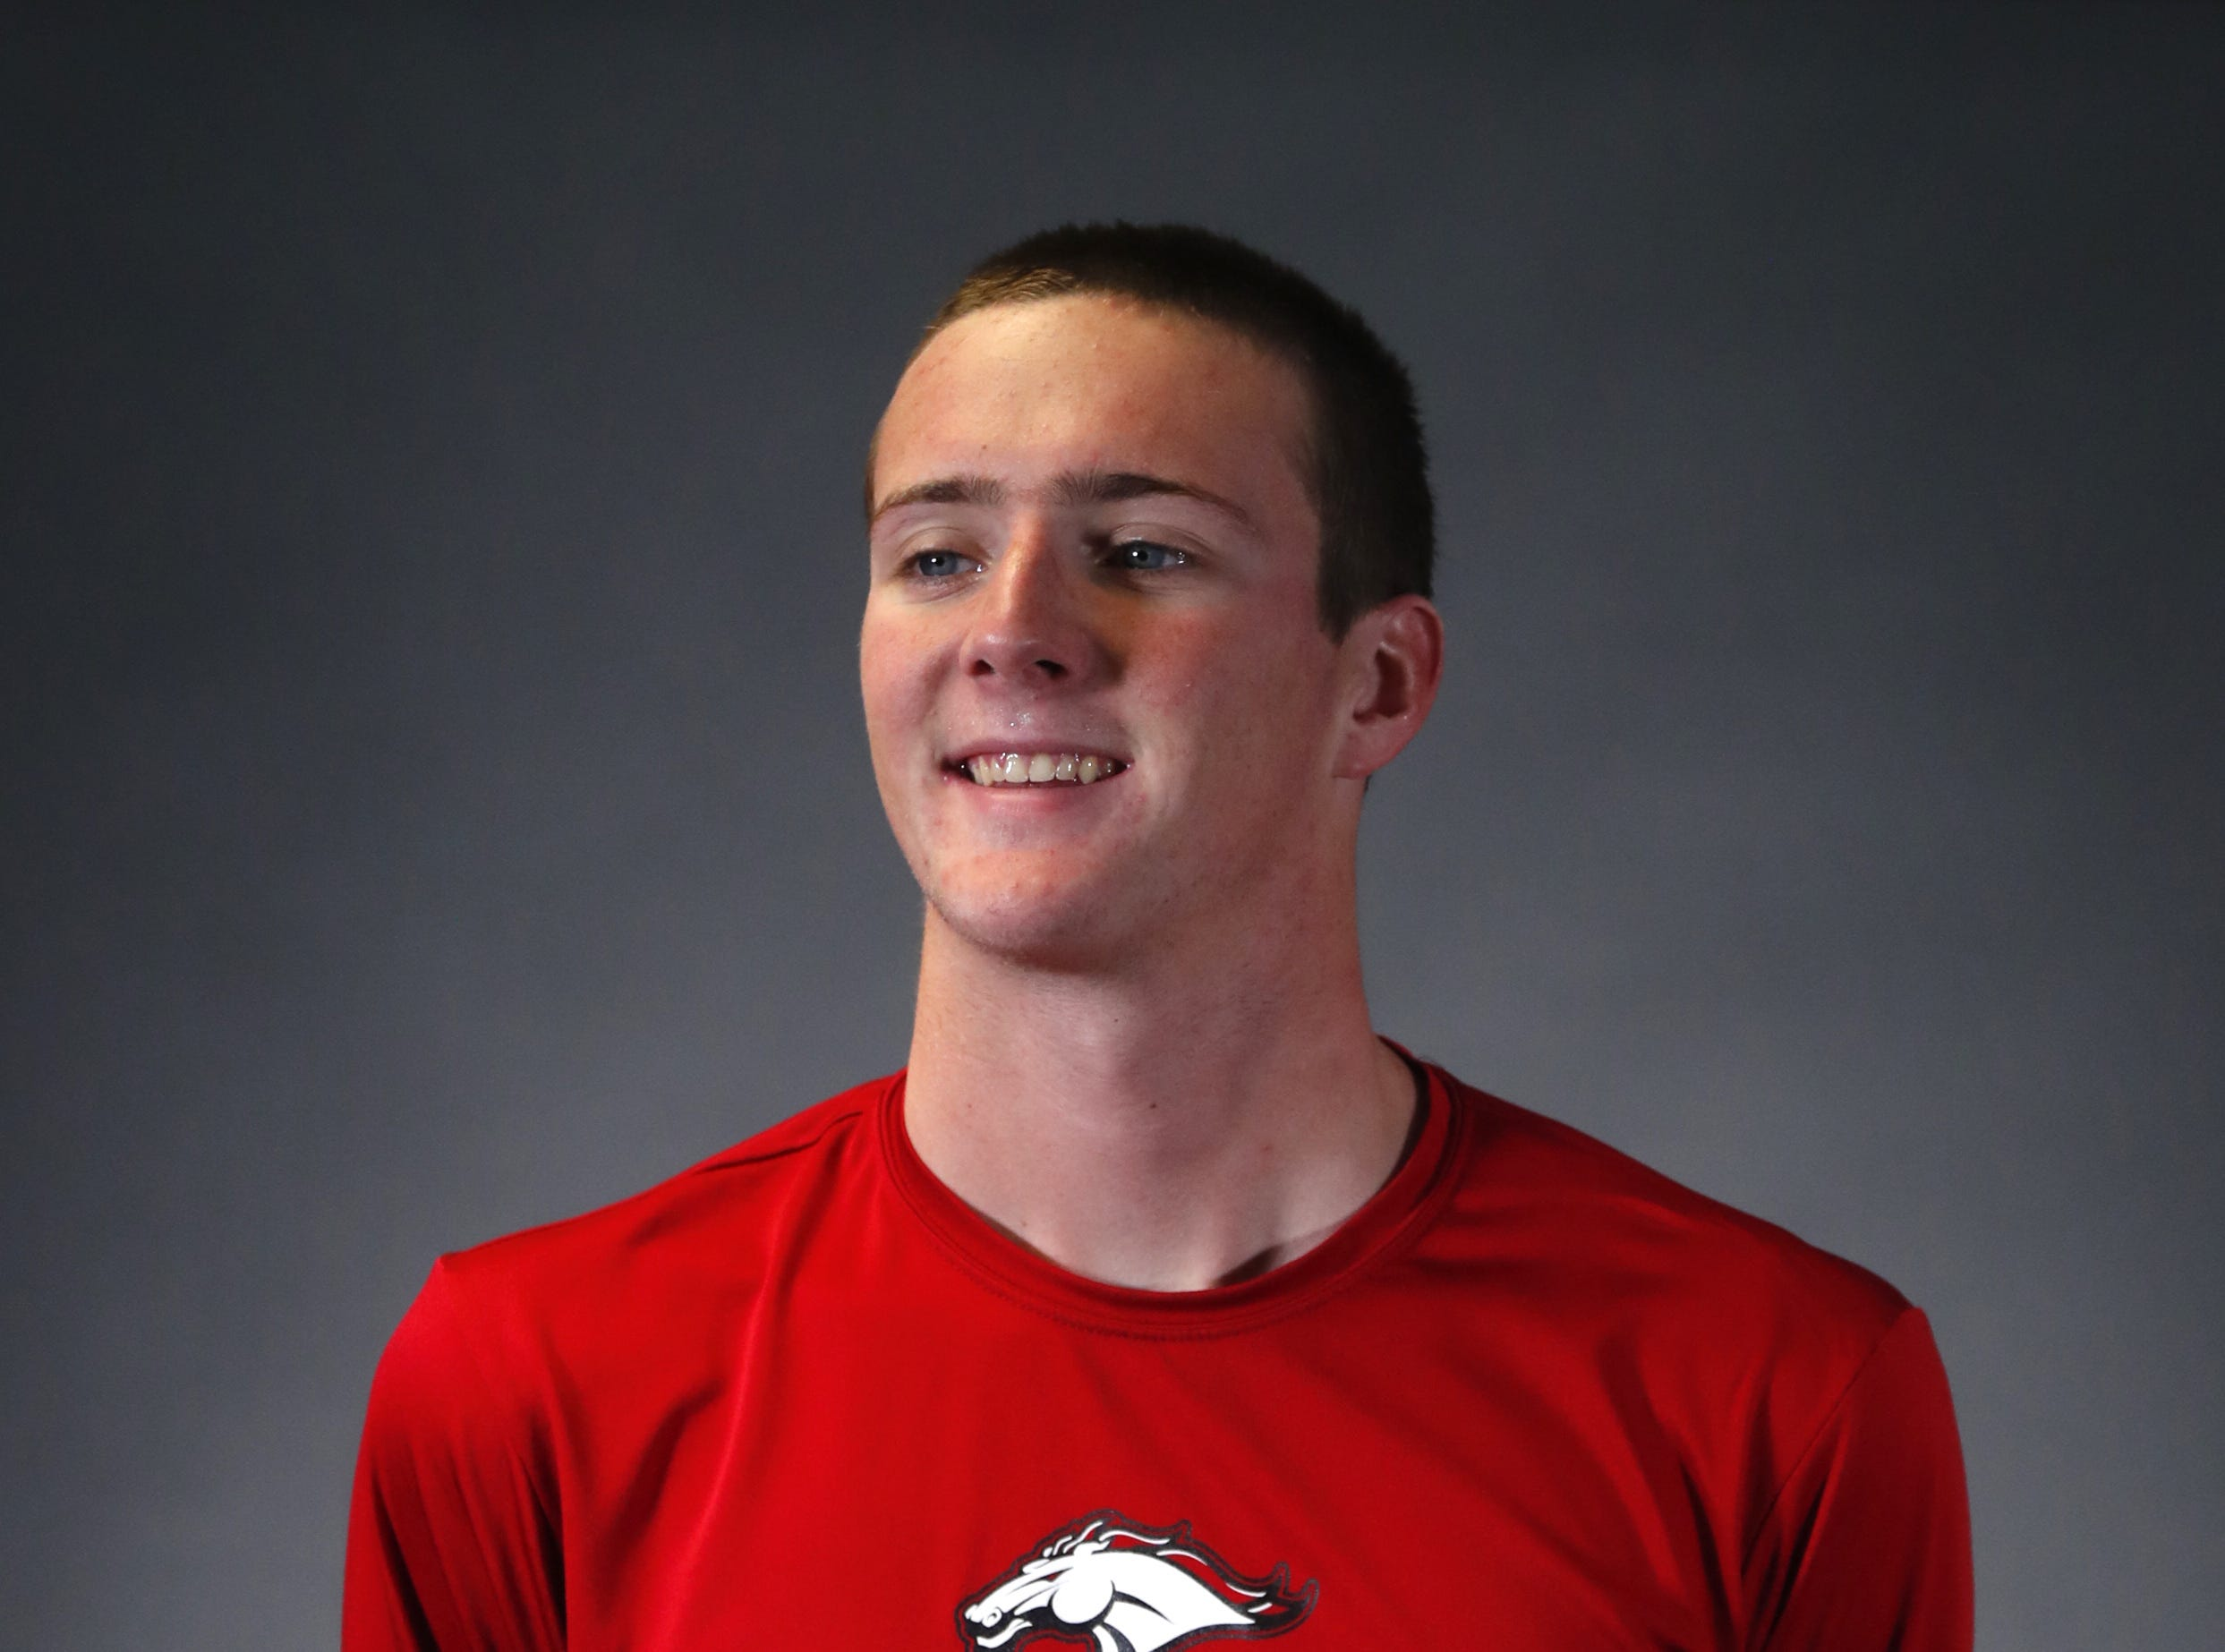 Matt Milovanovic from Brophy Prepatory Academy is a nominee for azcentral Sports Awards High School Boys Swimmer of the Year. #azcsportsawards